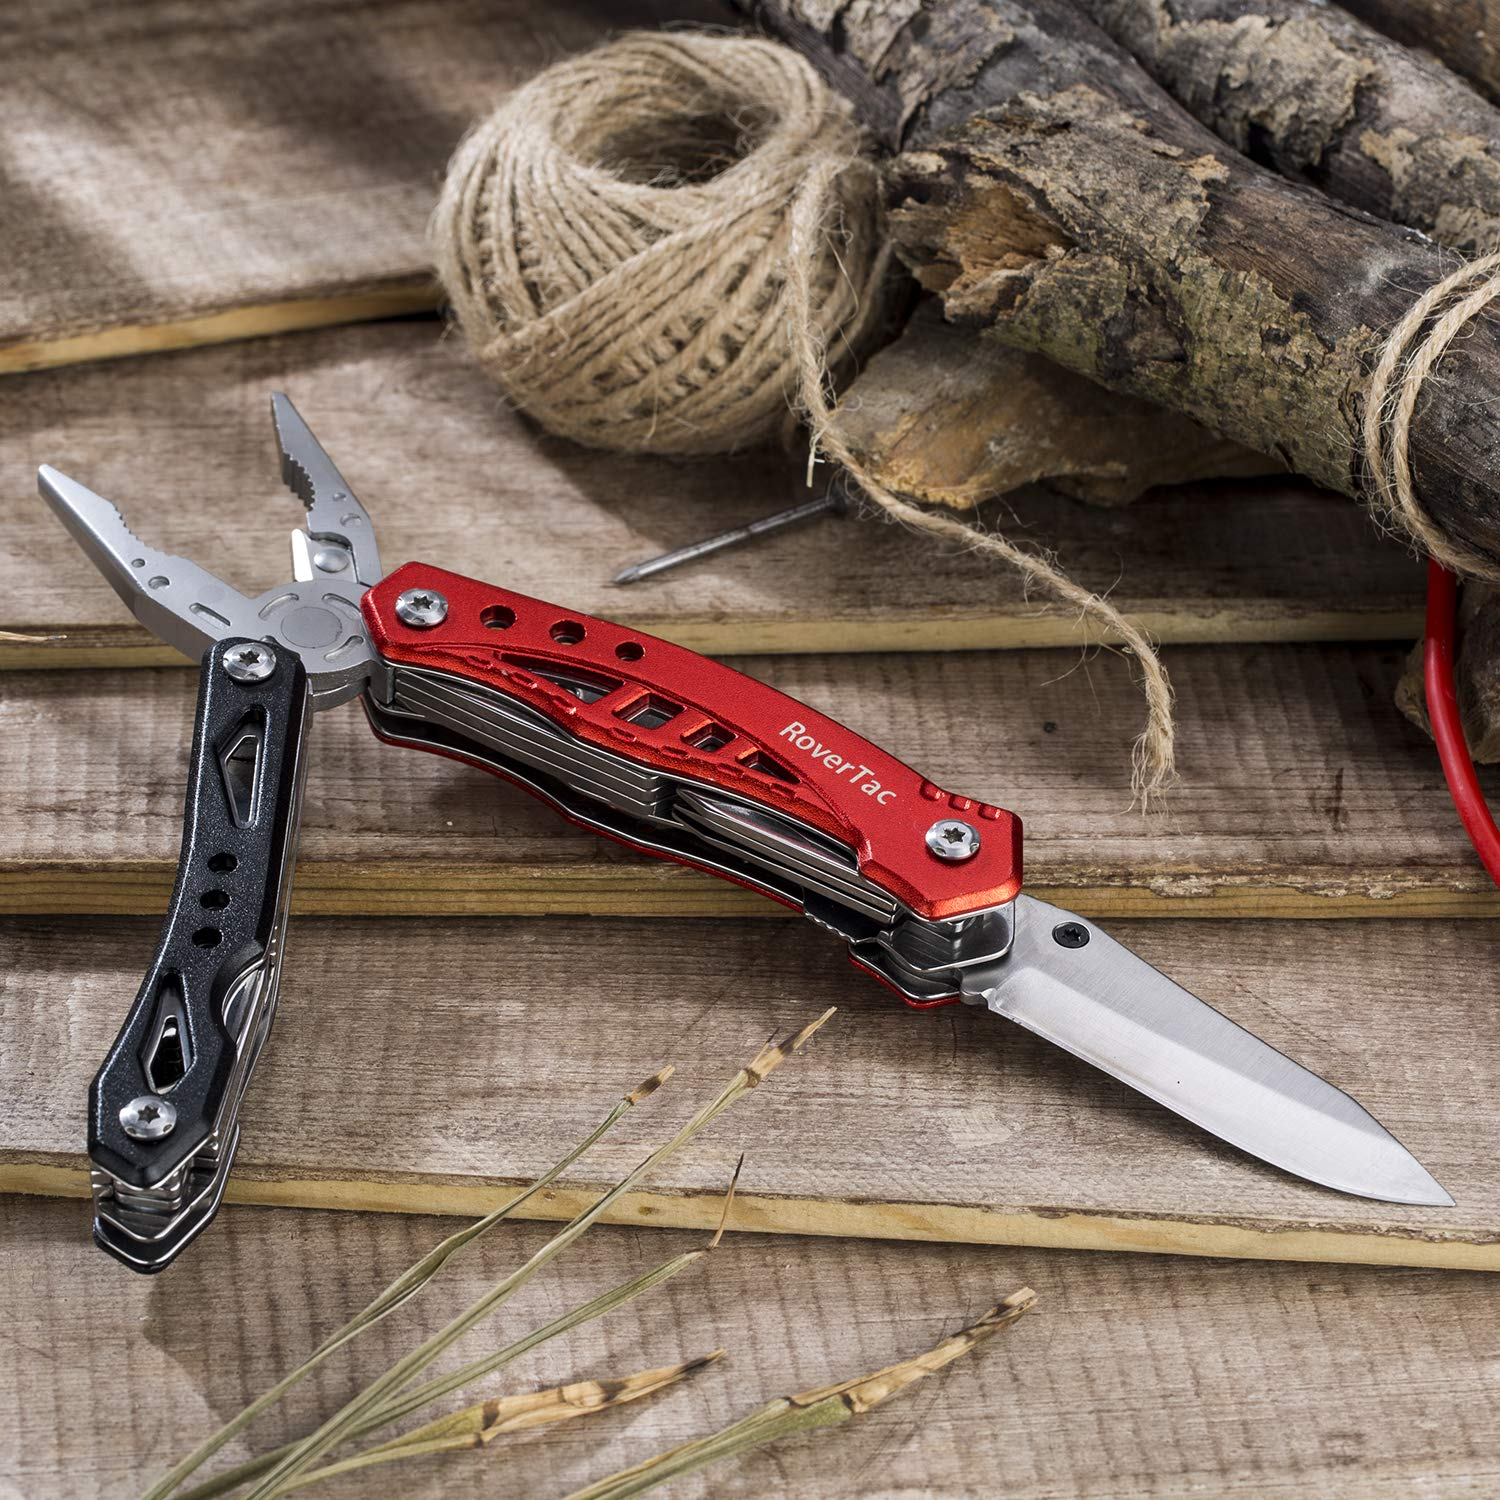 12 in 1 Multi tool Pliers RoverTac Pocket Knife with Durable Nylon Sheath, Multitool with Pliers, Bottle Opener, Screwdriver, Saw-Perfect for Outdoor, Survival, Camping, Fishing, Hiking (red) by RoverTac (Image #6)